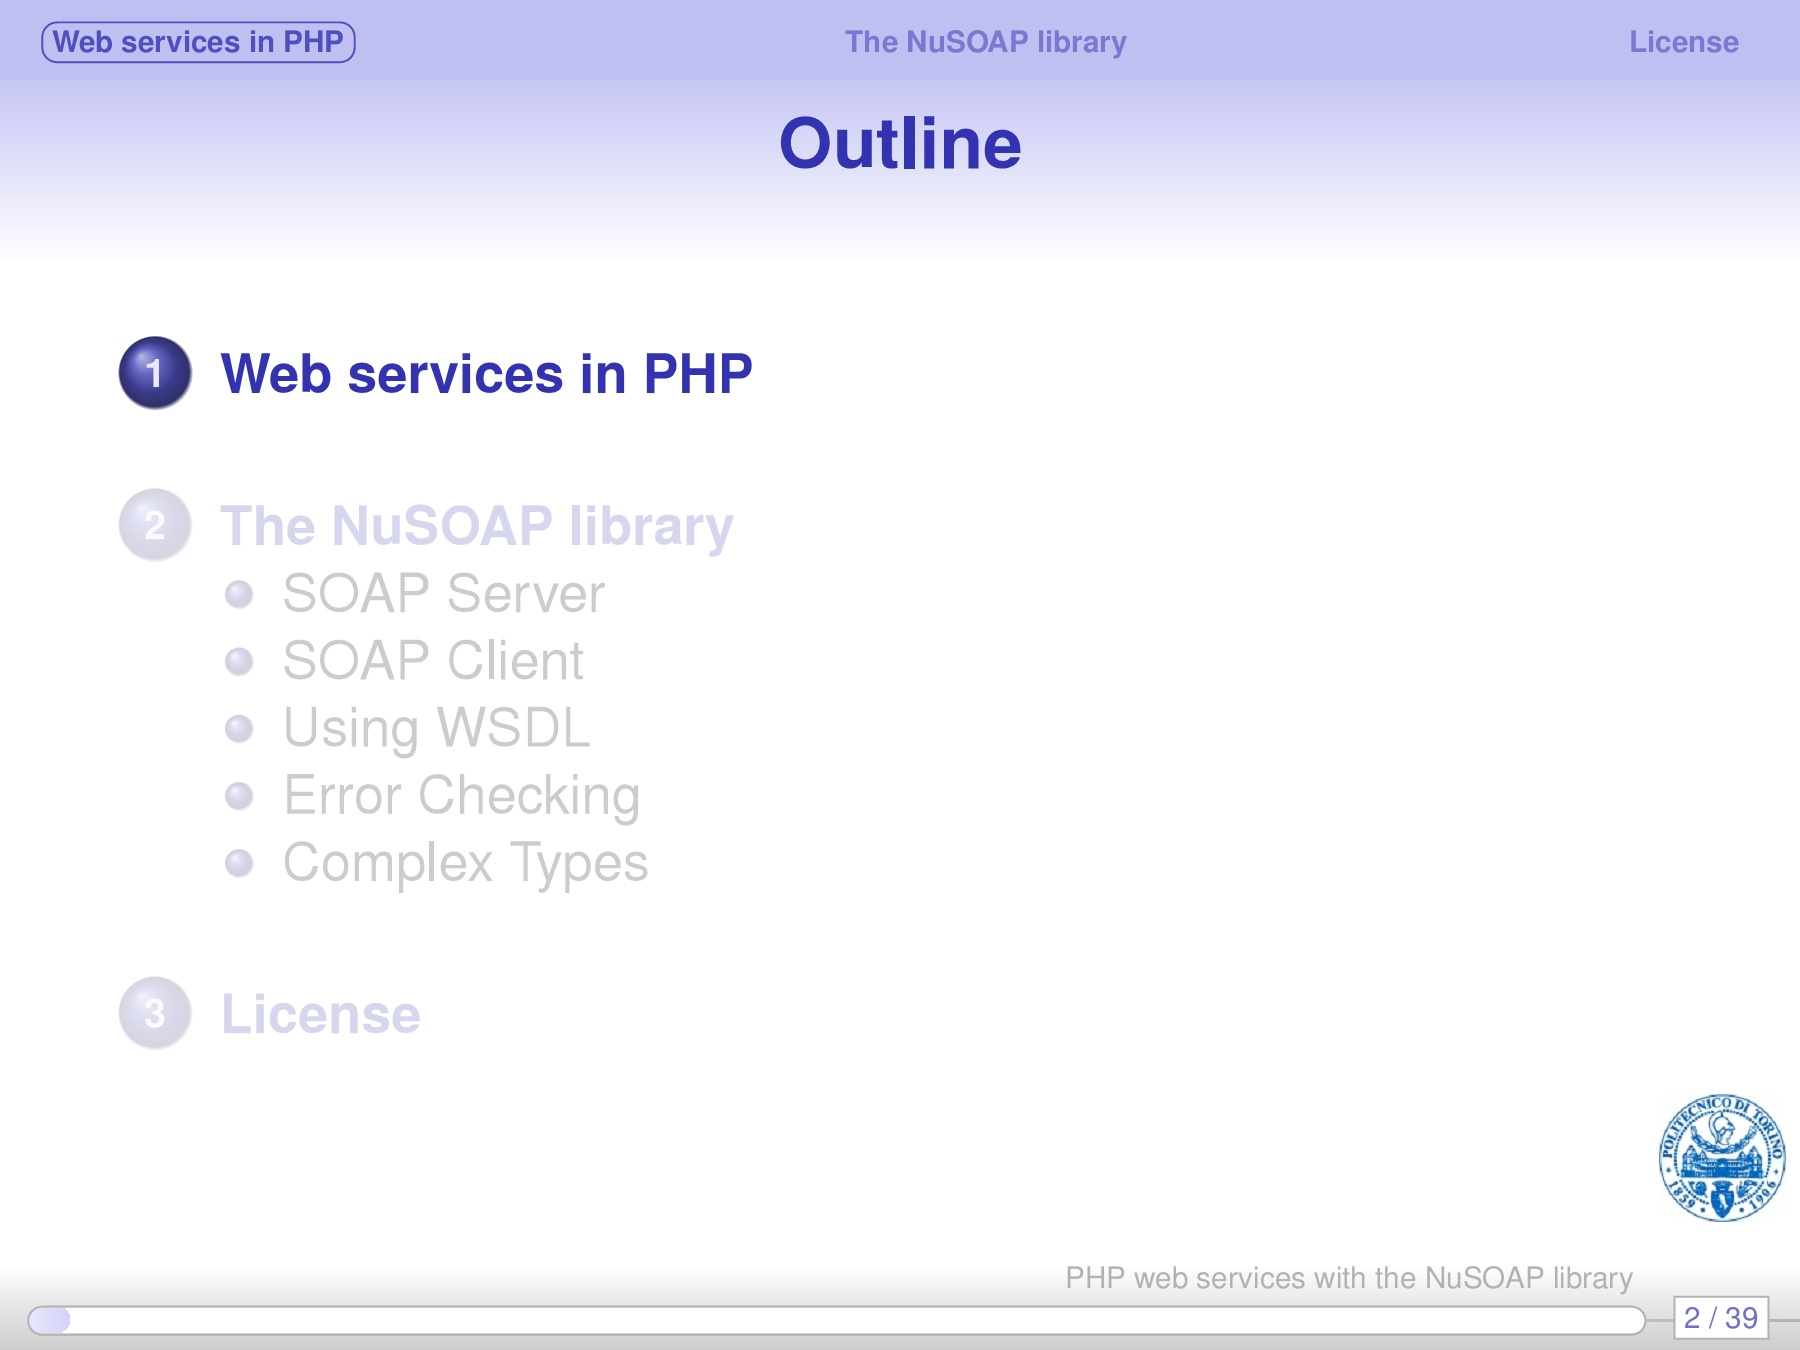 php-nusoap Pages 1 - 39 - Text Version | AnyFlip